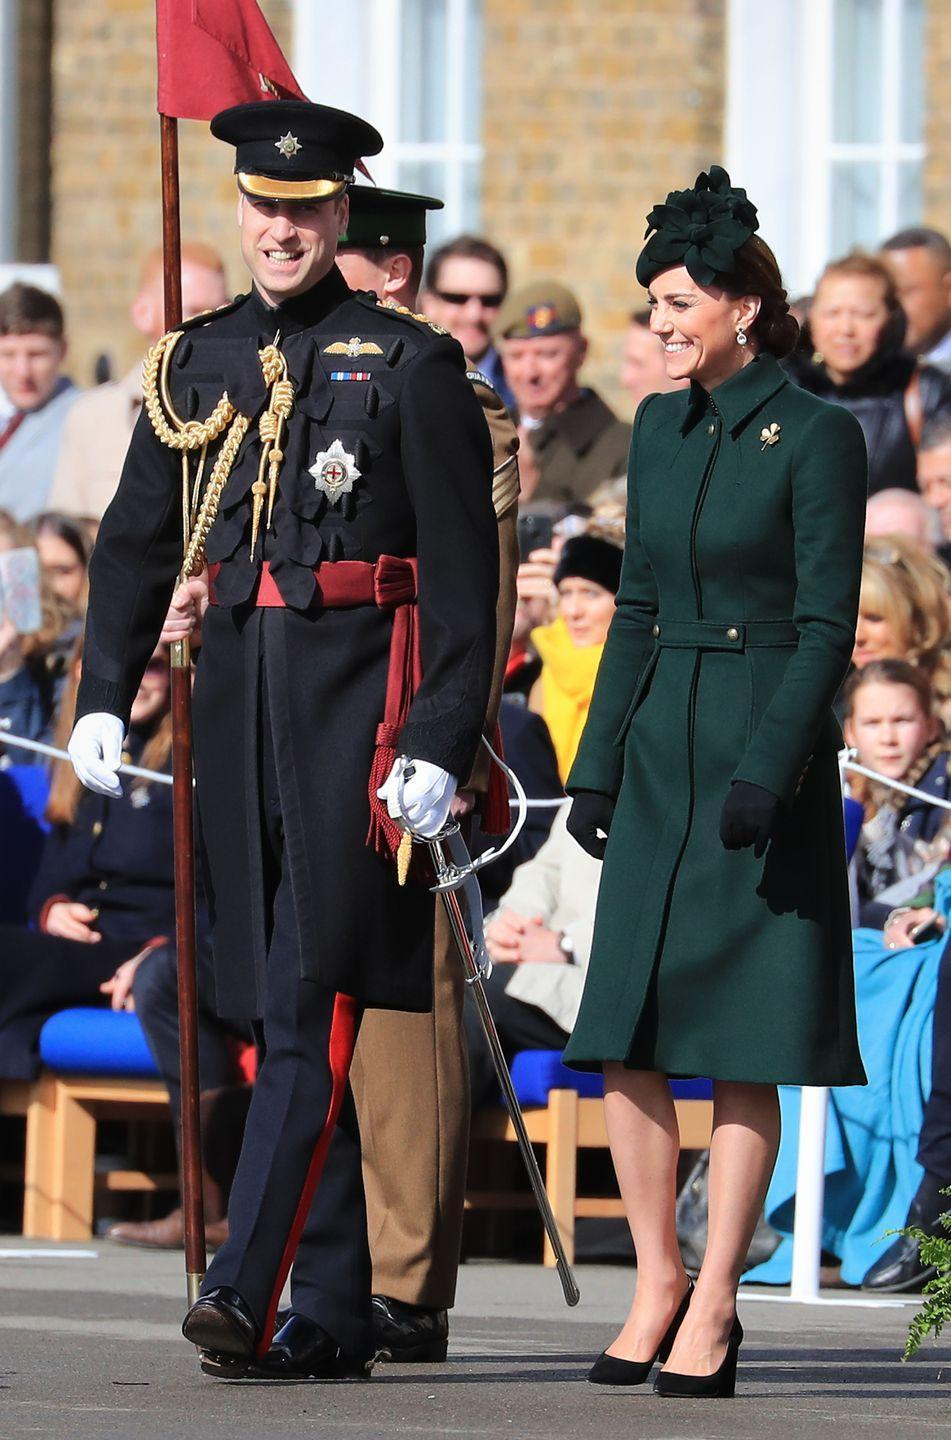 """<p>For her annual St. Patrick's Day visit to the Irish Guards, Kate Middleton wore a dark green Alexander McQueen coat, Kiki McDonough green tourmaline and amethyst drop earrings, a green fascinator, and the <a href=""""https://www.townandcountrymag.com/style/jewelry-and-watches/a26799974/kate-middleton-gold-shamrock-brooch-history/"""" rel=""""nofollow noopener"""" target=""""_blank"""" data-ylk=""""slk:traditional gold Shamrock brooch"""" class=""""link rapid-noclick-resp"""">traditional gold Shamrock brooch</a>. </p>"""